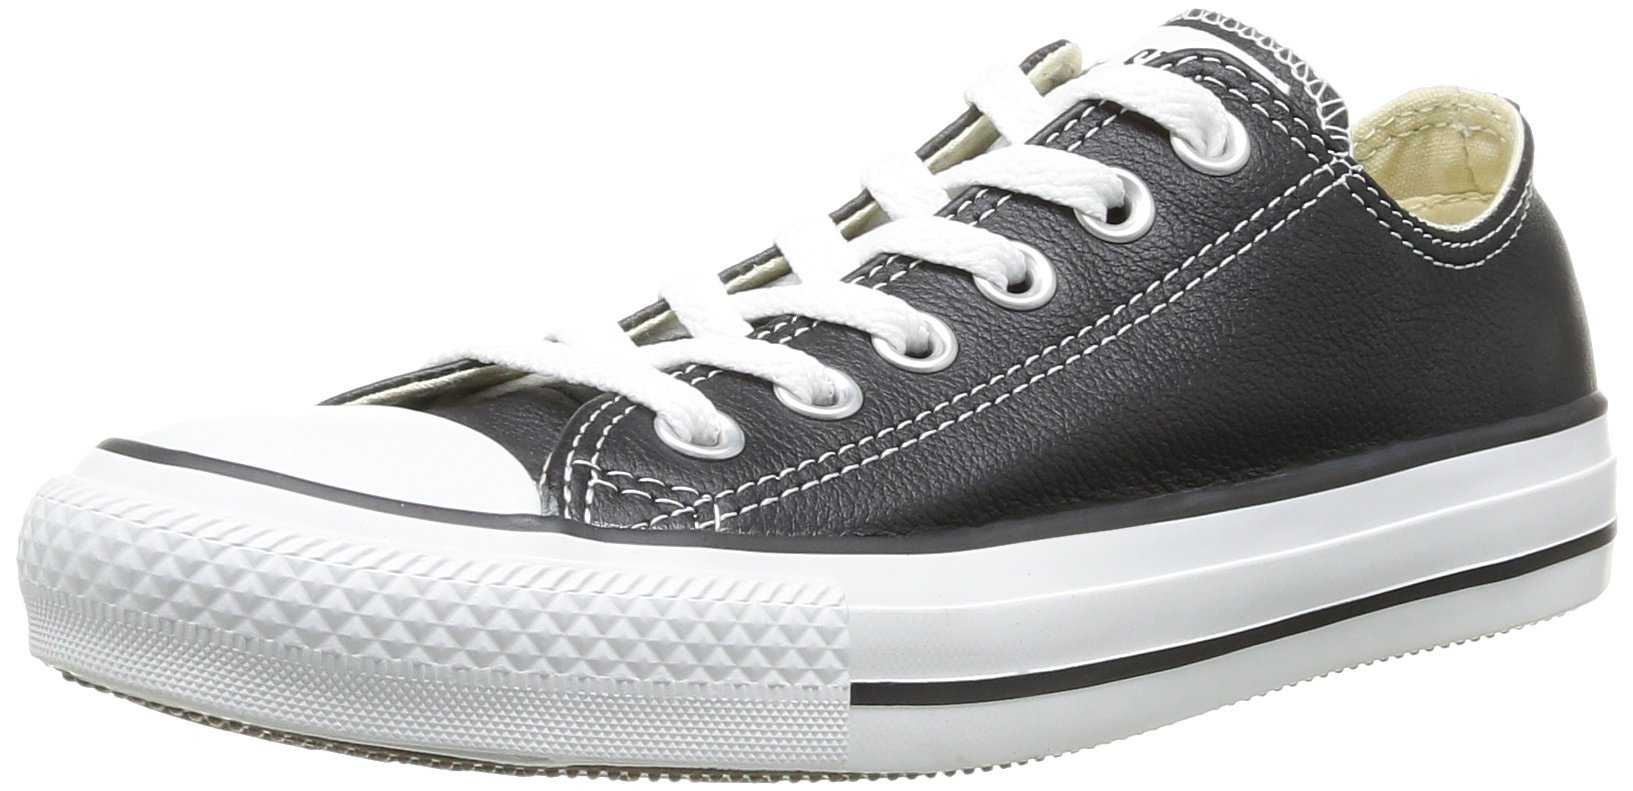 Converse All Star Synthetic Leather Low White Black Men Shoes 132174C by Converse